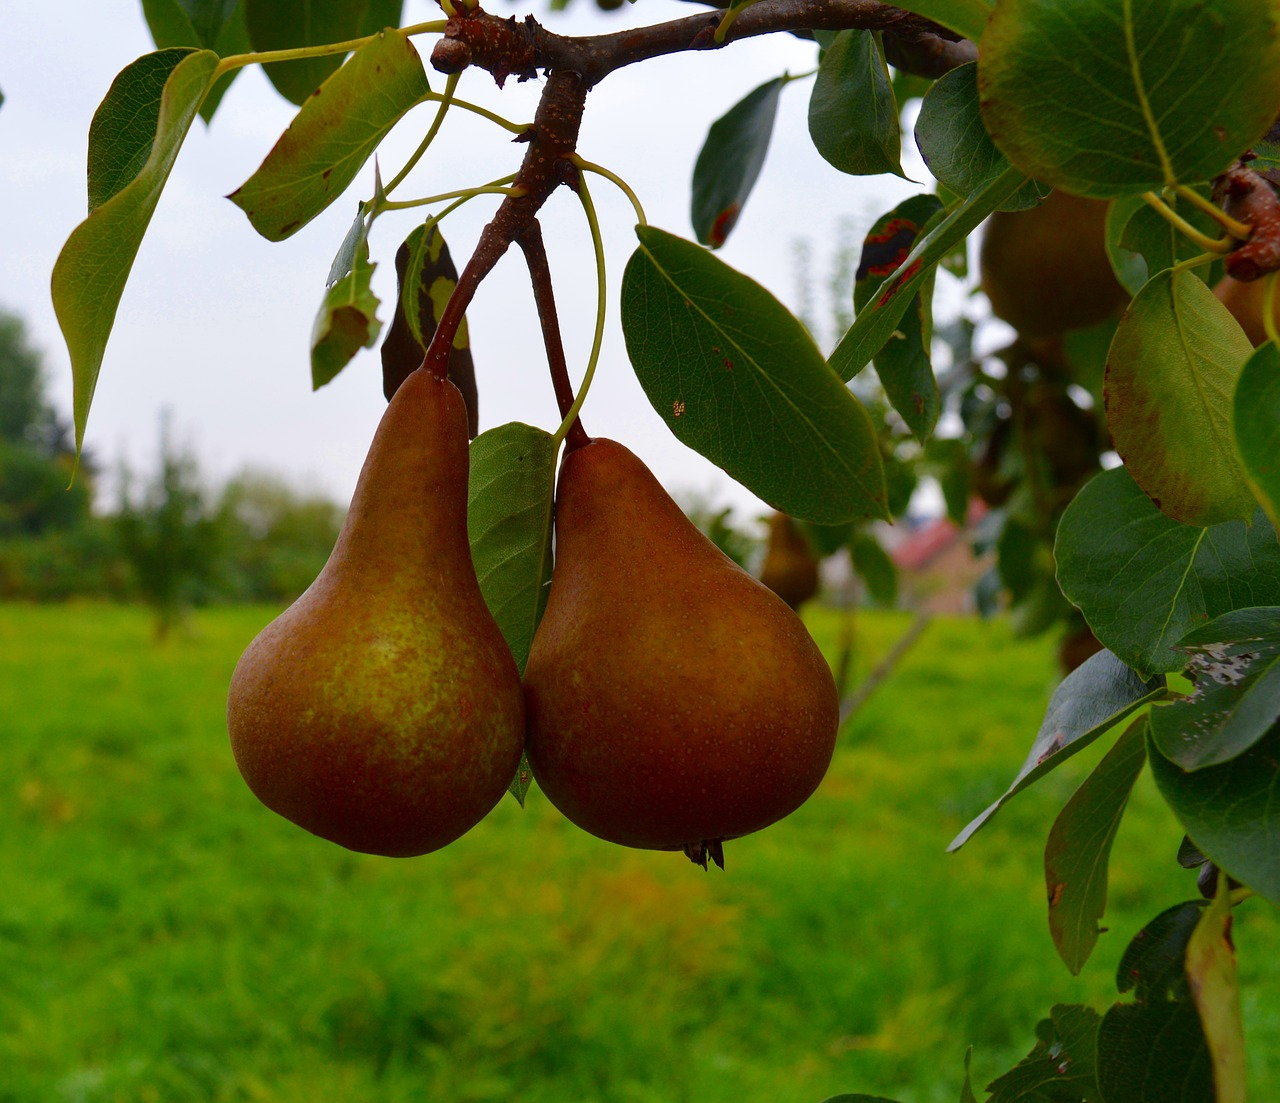 Two Ripe pear hanging on a tree, ready to pick